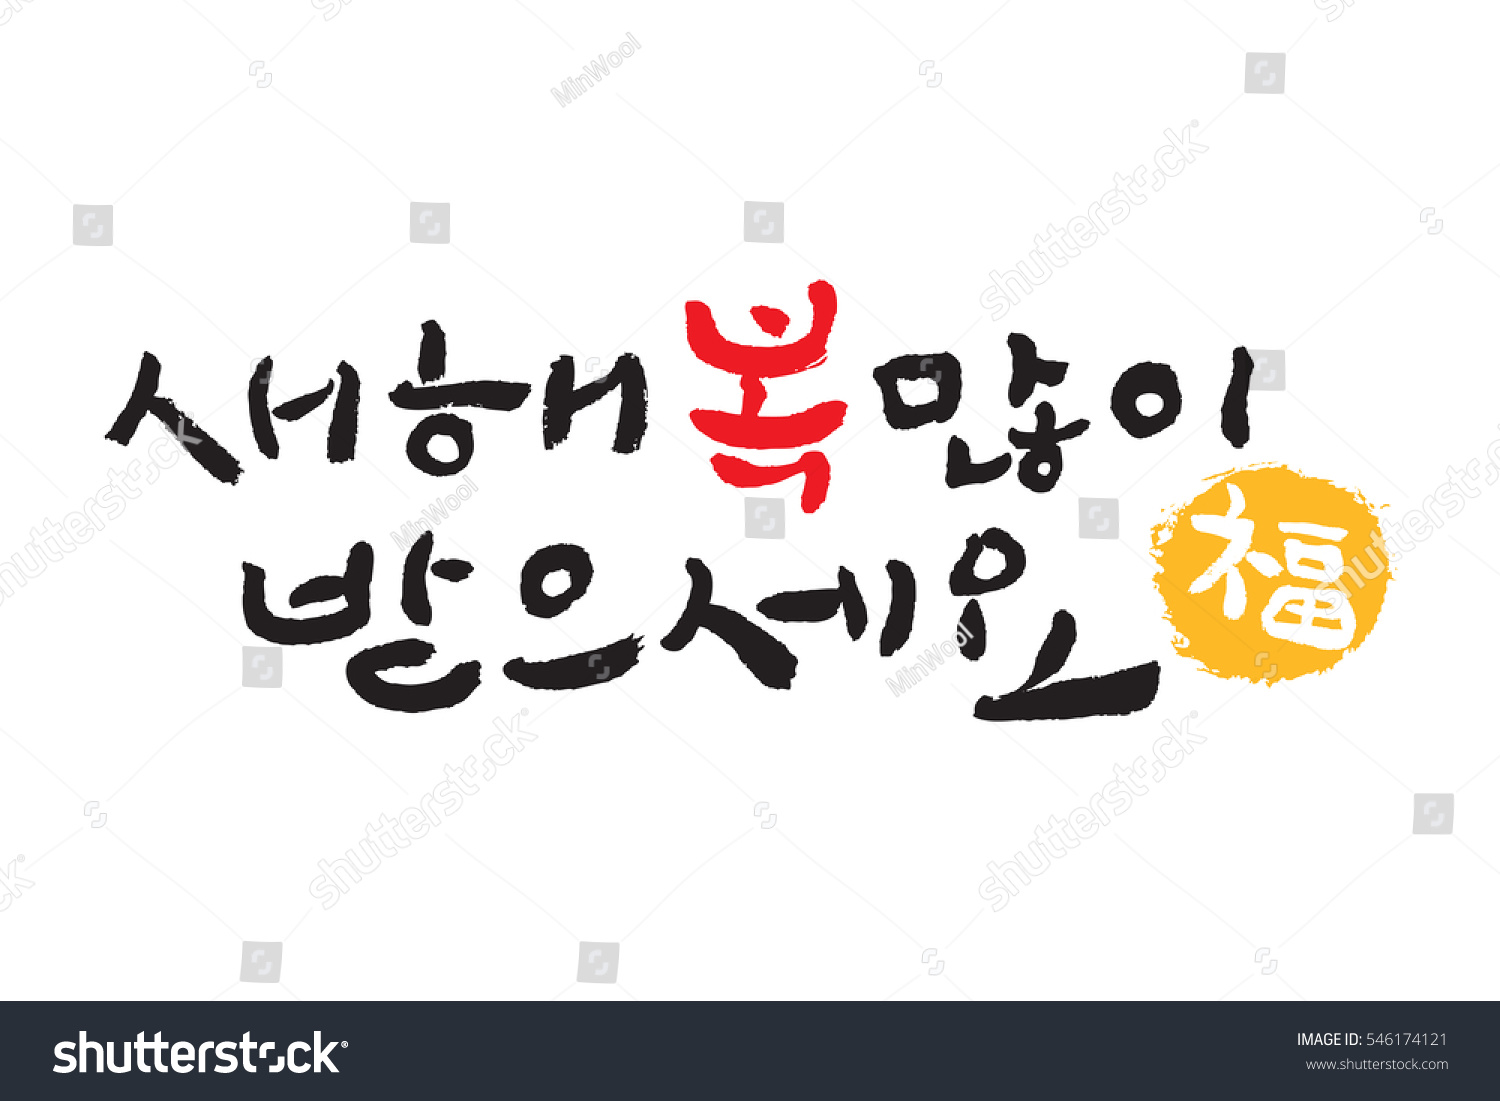 New years greeting translation korean text stock vector 546174121 new years greeting translation of korean text happy new year calligraphy m4hsunfo Gallery